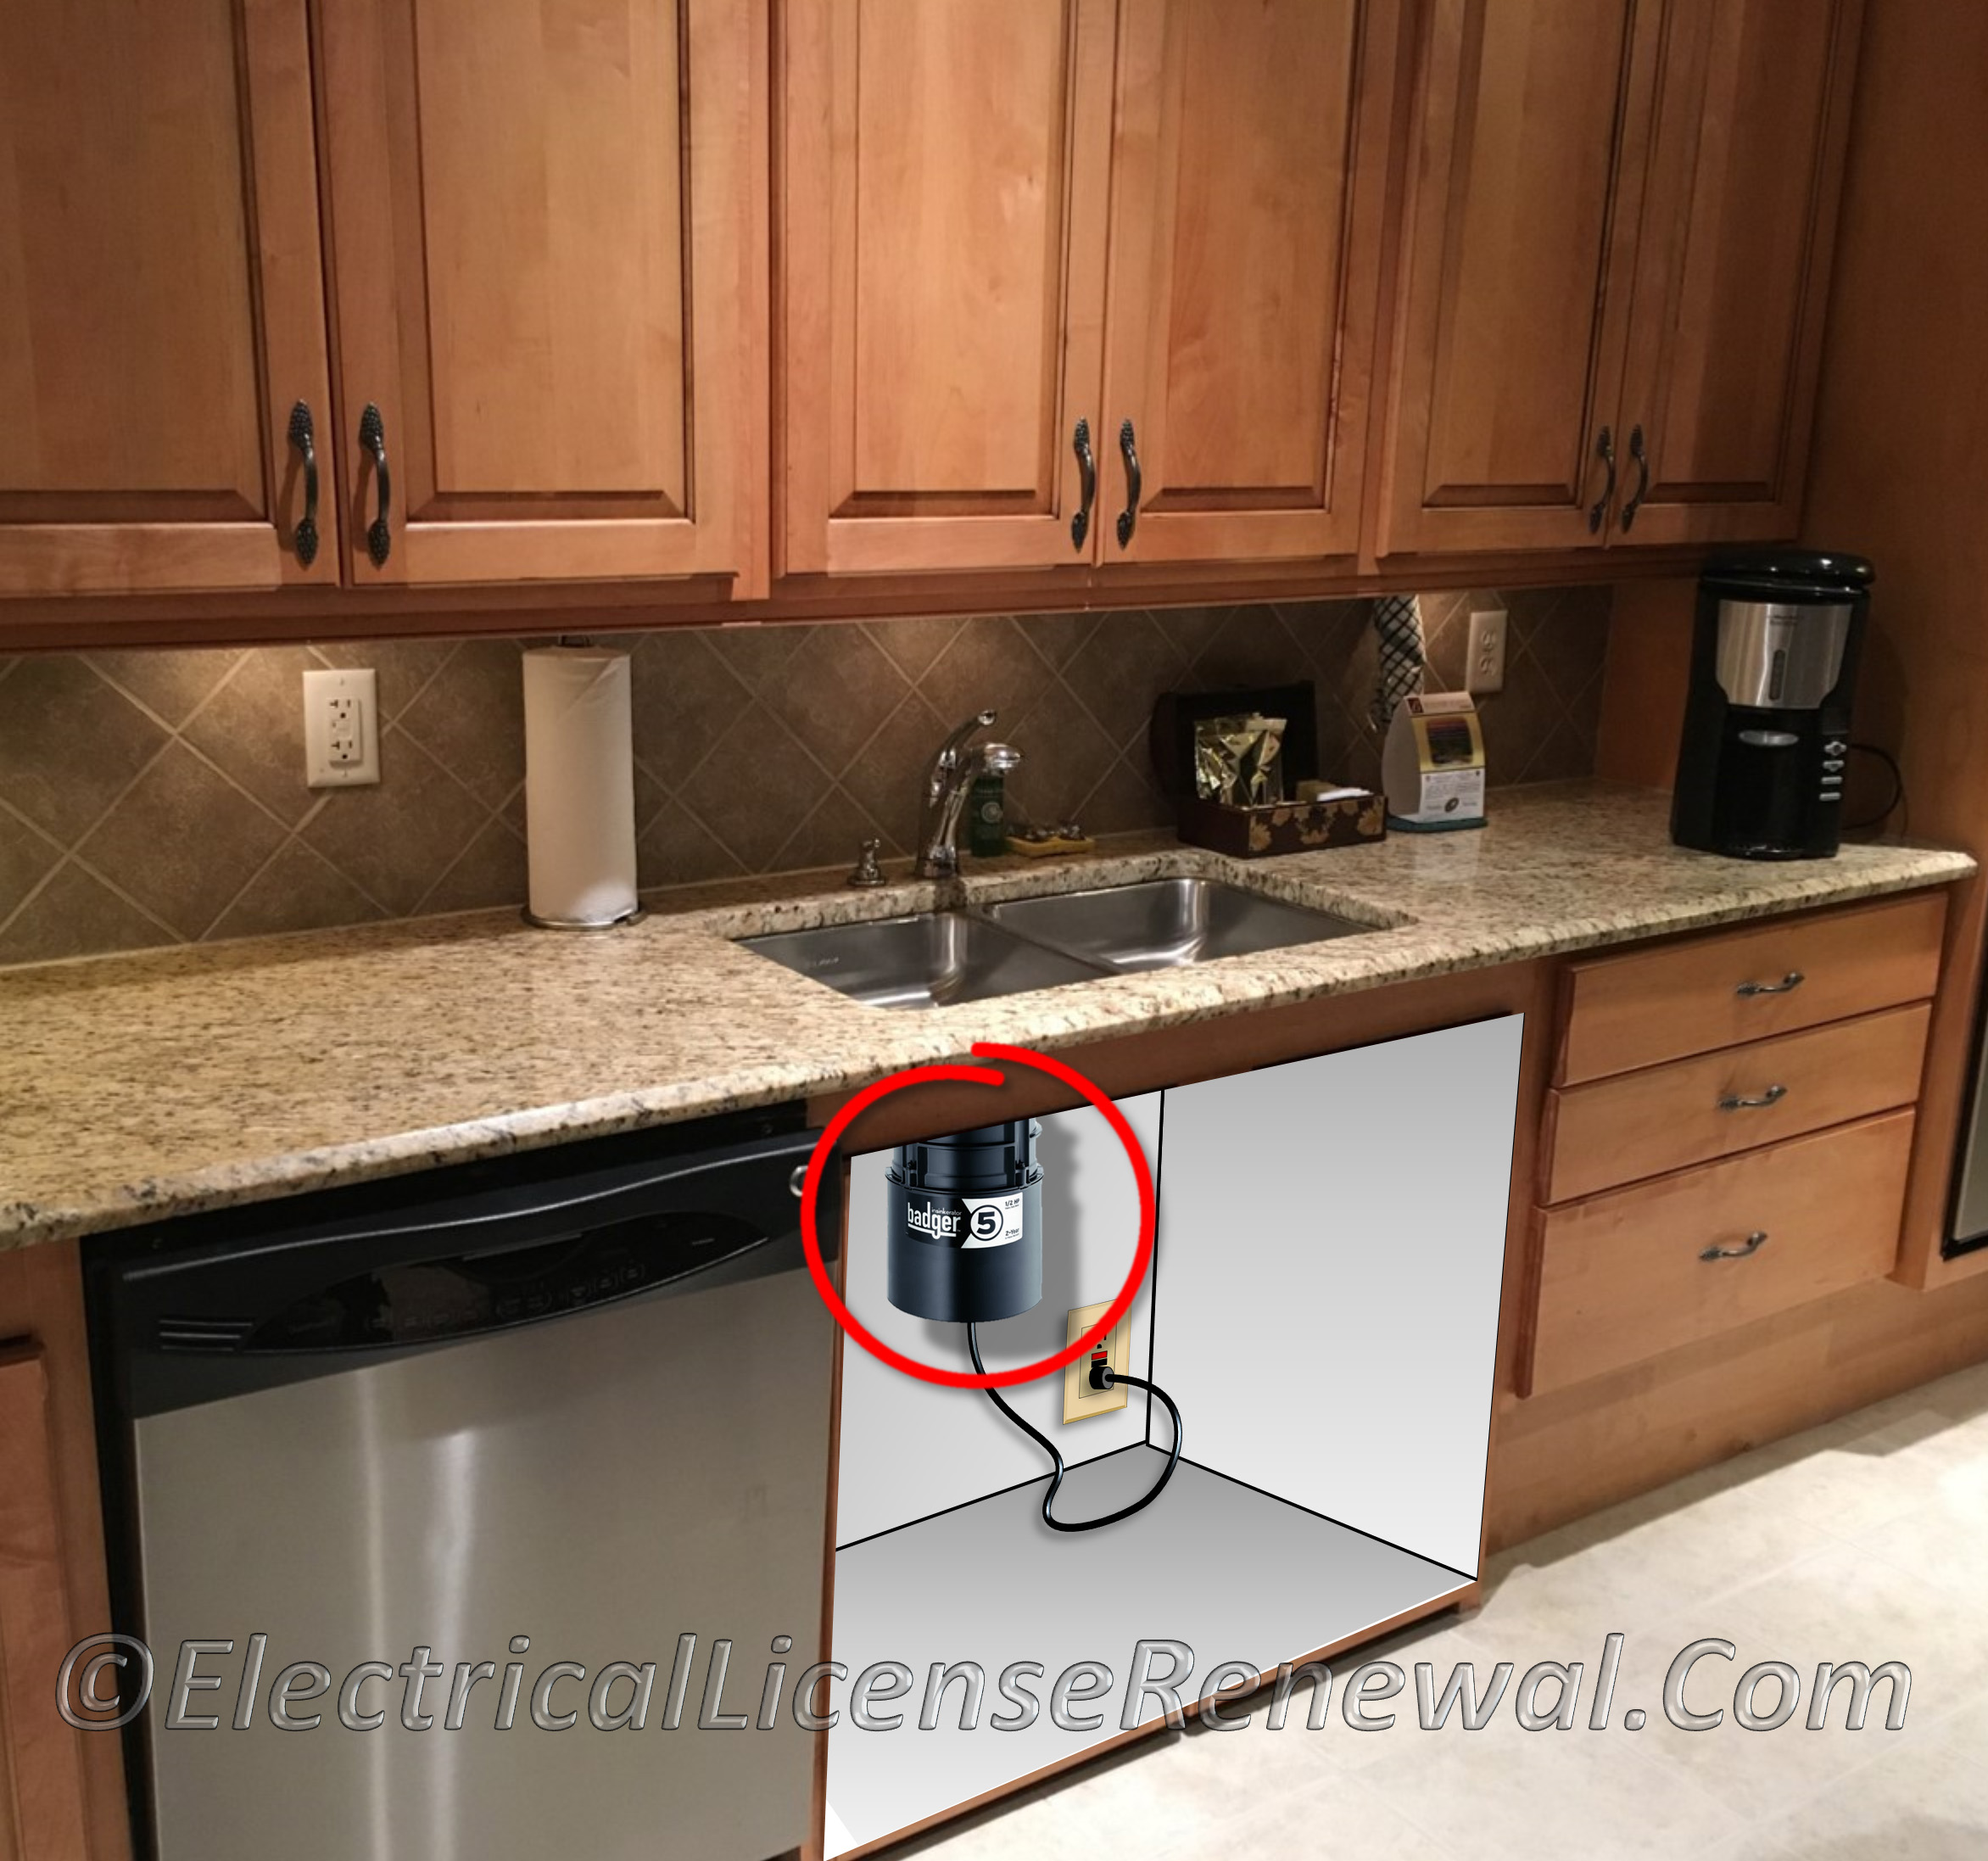 422 16 B 1 Appliances Electrically Operated In Sink Waste Disposers